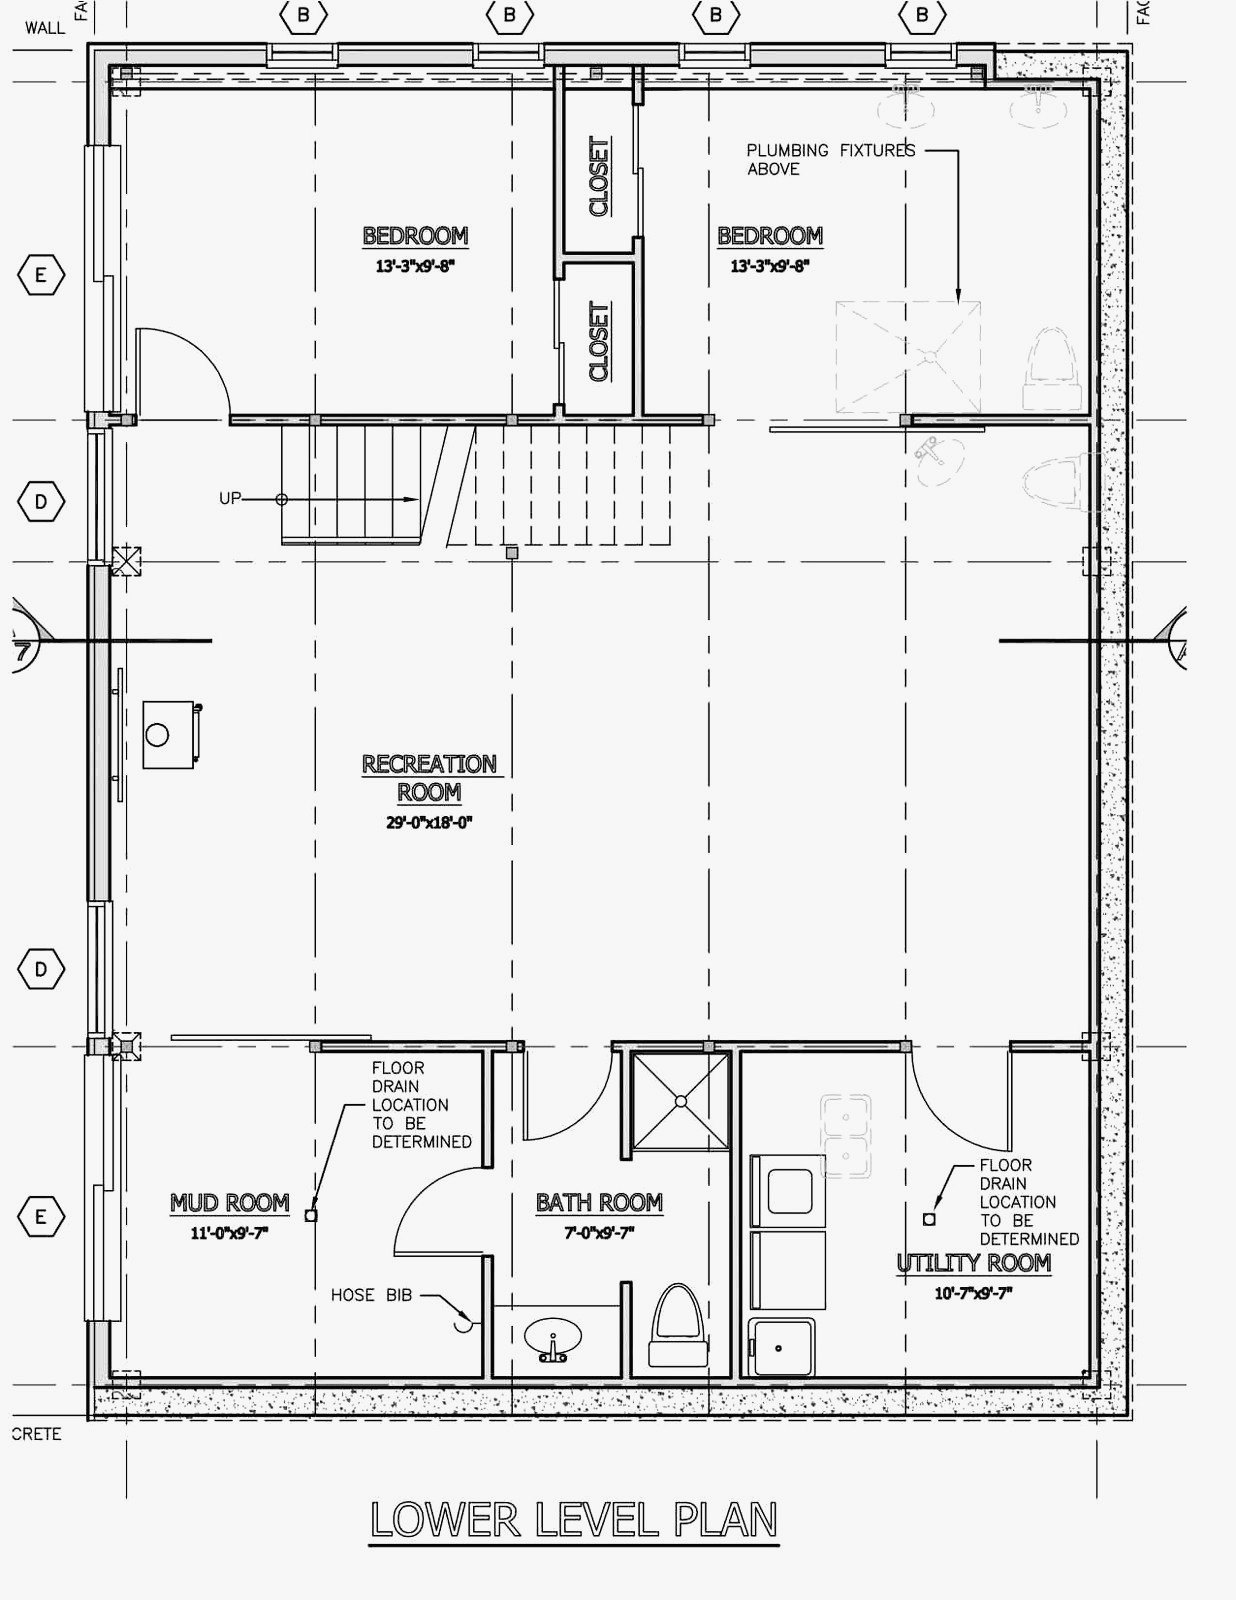 pole barn house designs with basements lovely pole barn house with basements fresh houses floor plans of pole barn house designs with basements